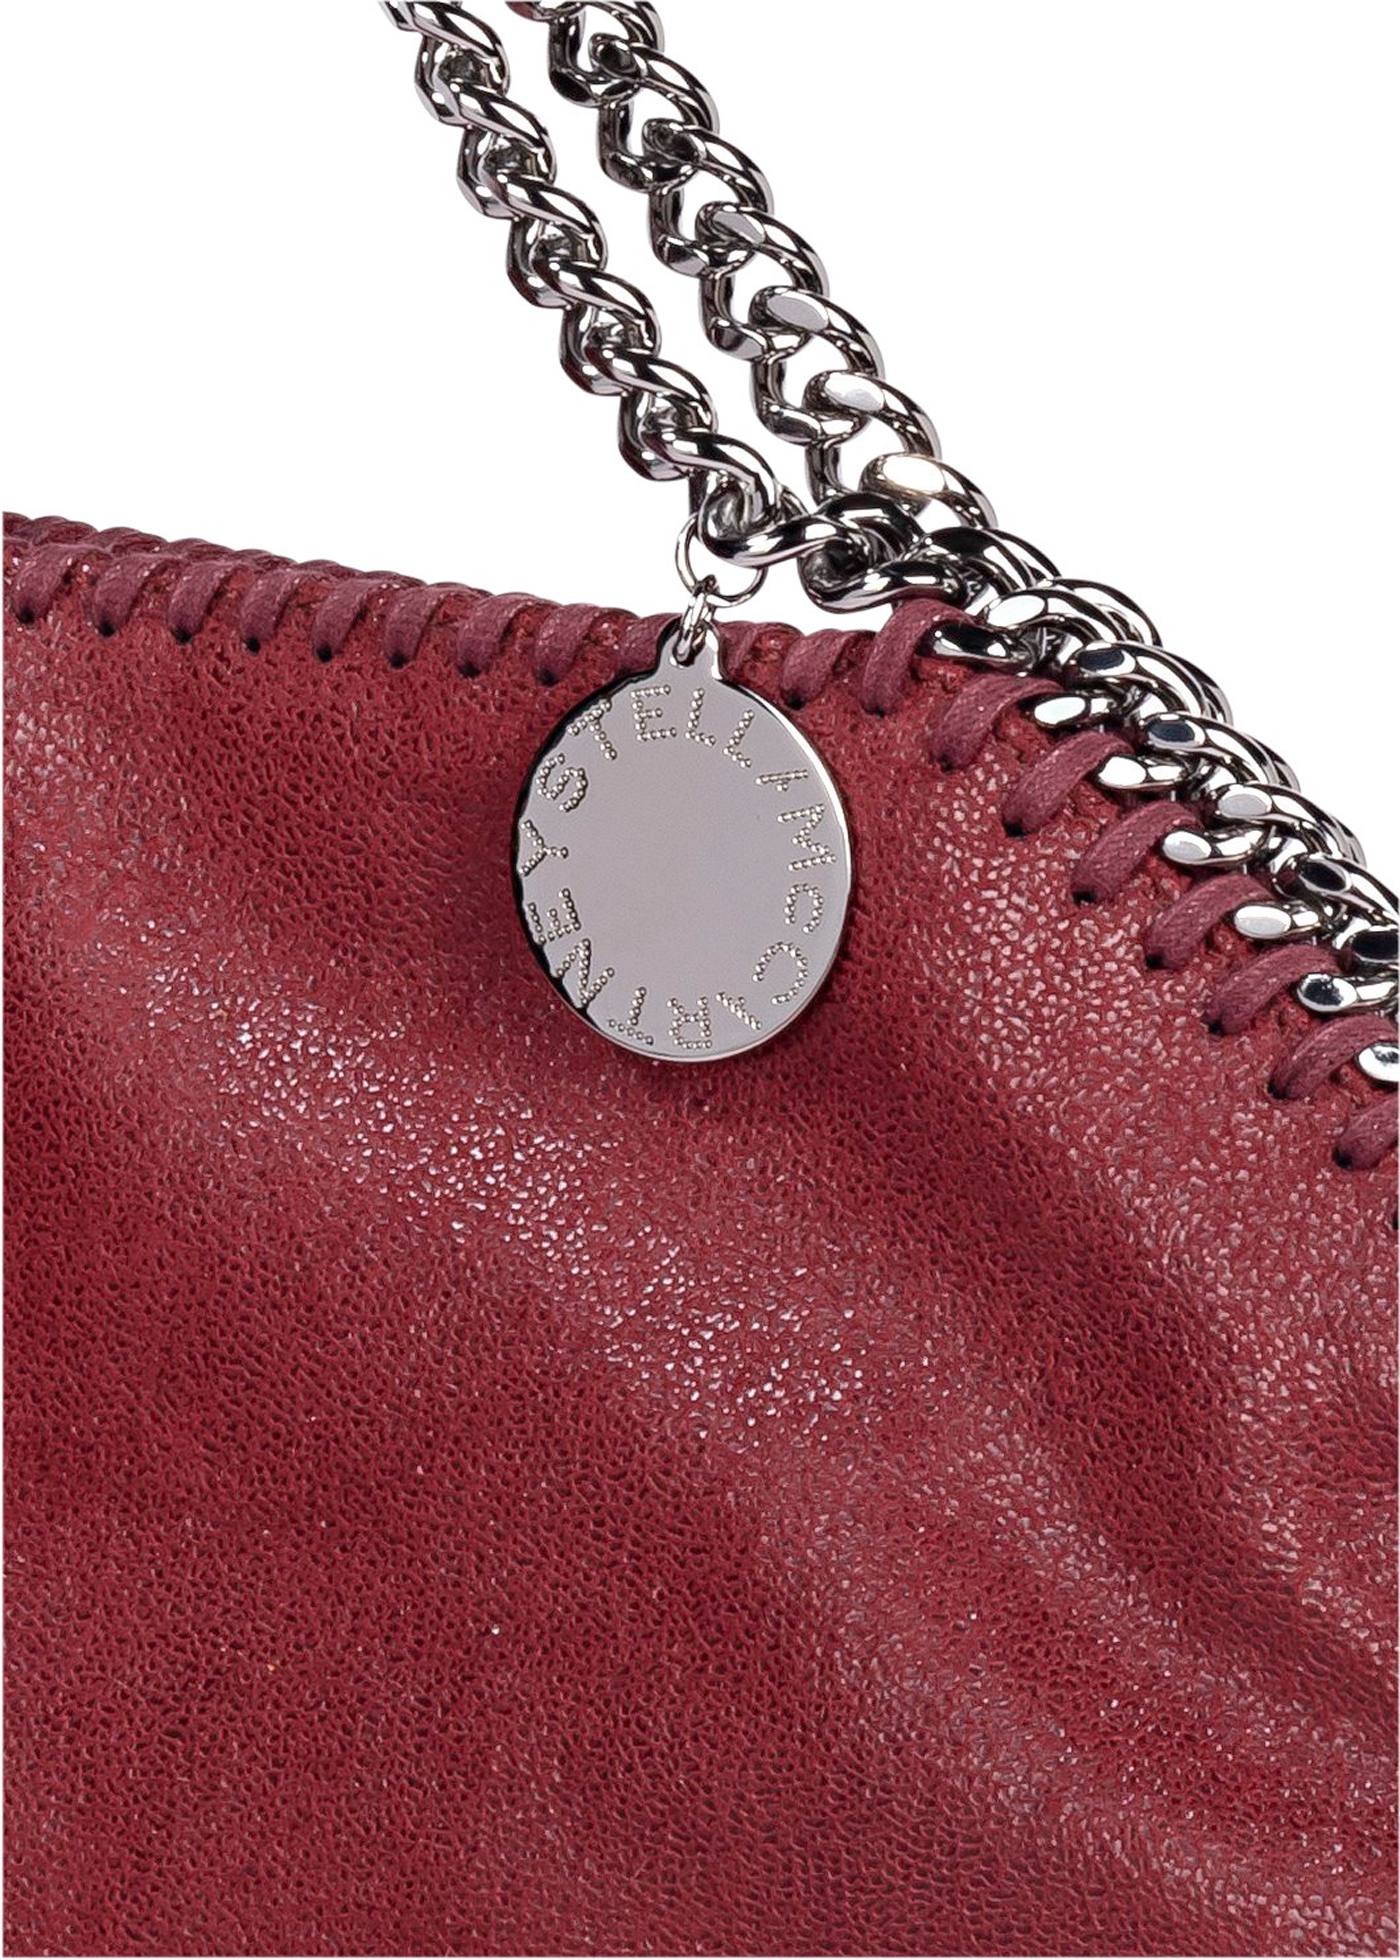 3 Chain Falabella Shaggy Deer image number 2